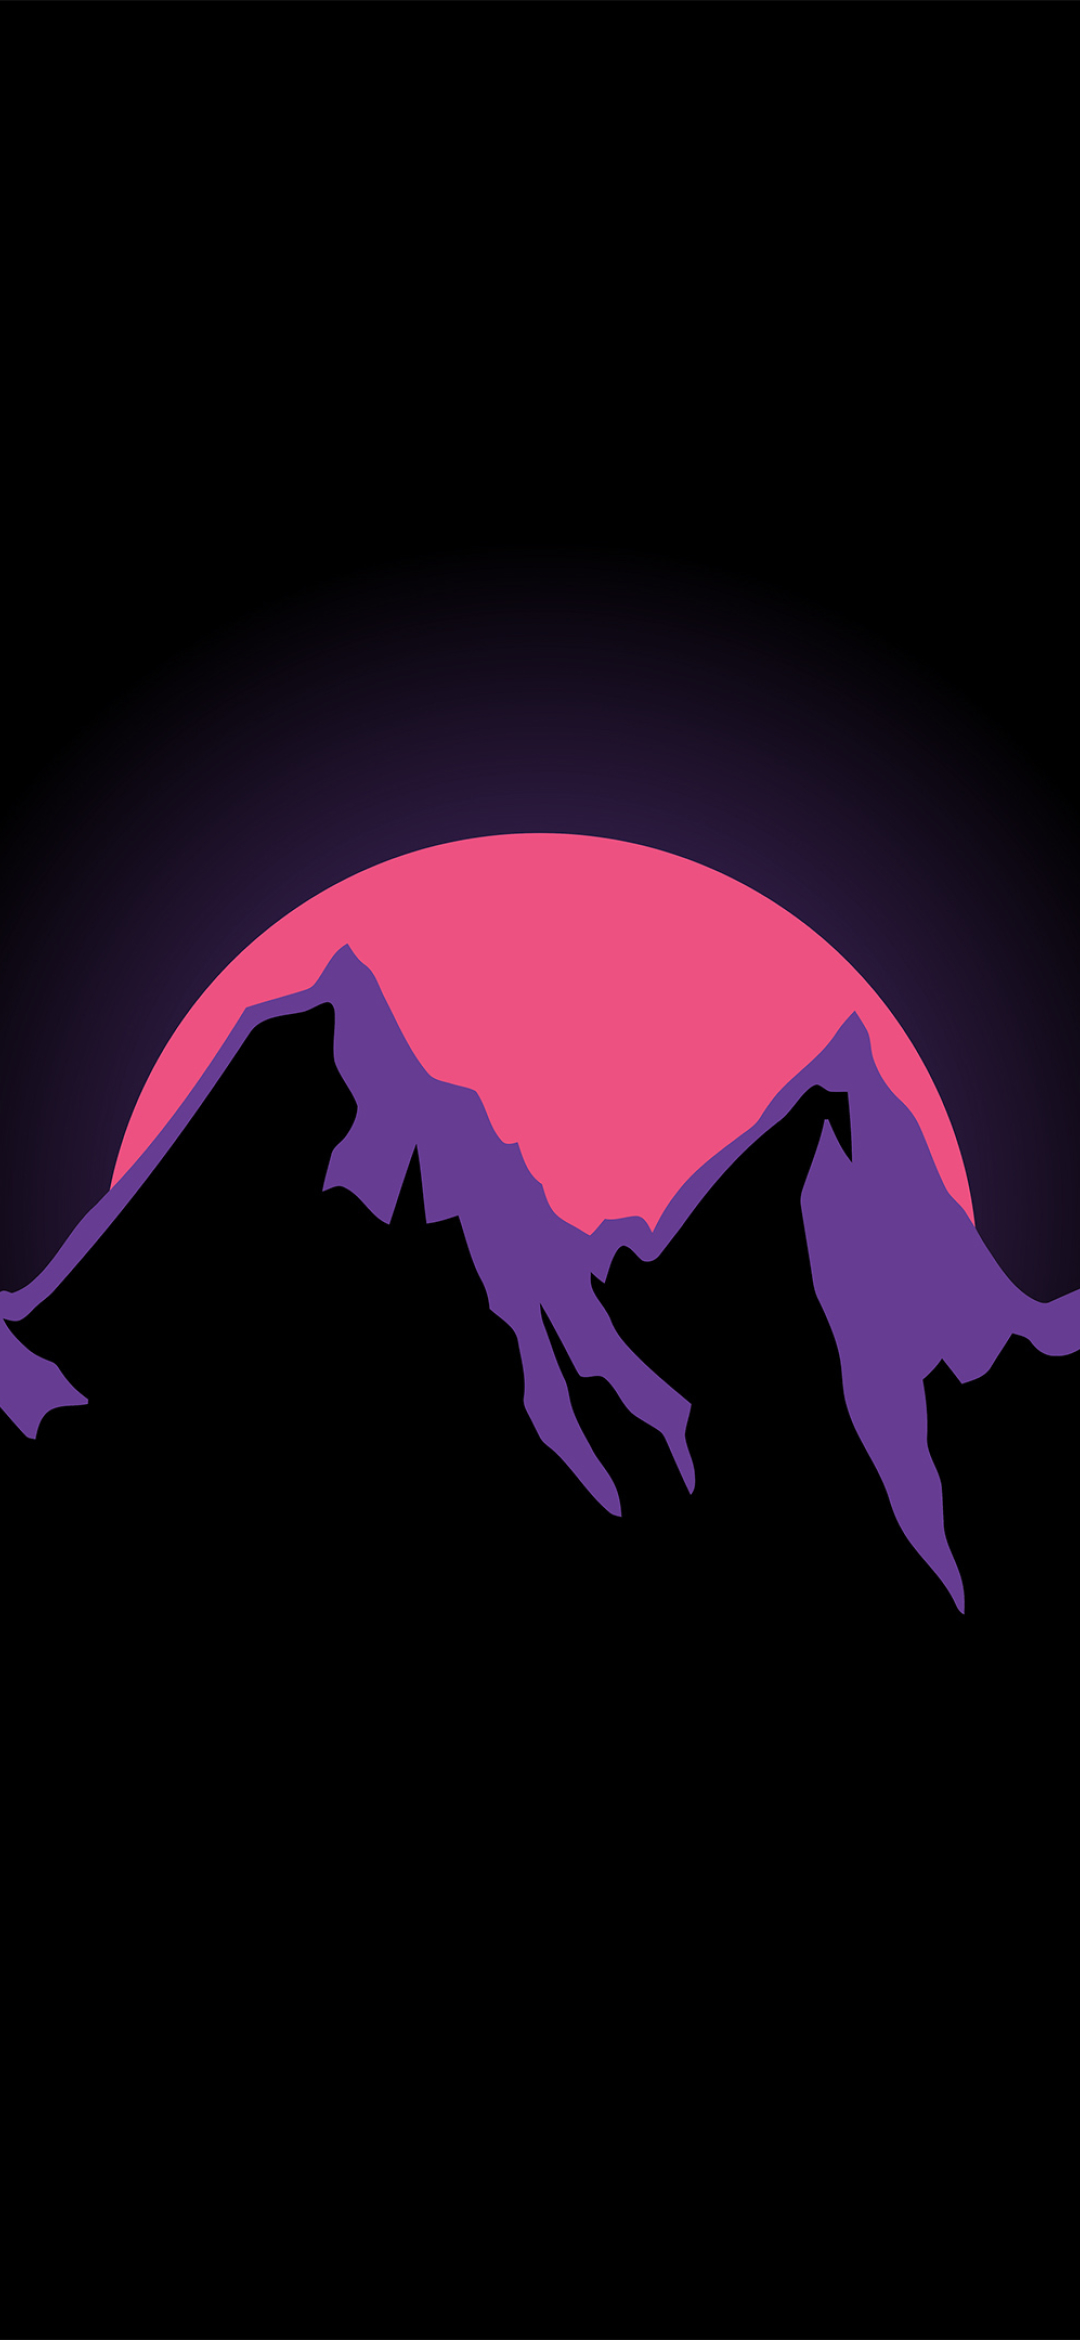 1080x2340 Mountains Amoled 4k 1080x2340 Resolution Wallpaper Hd Artist 4k Wallpapers Images Photos And Background